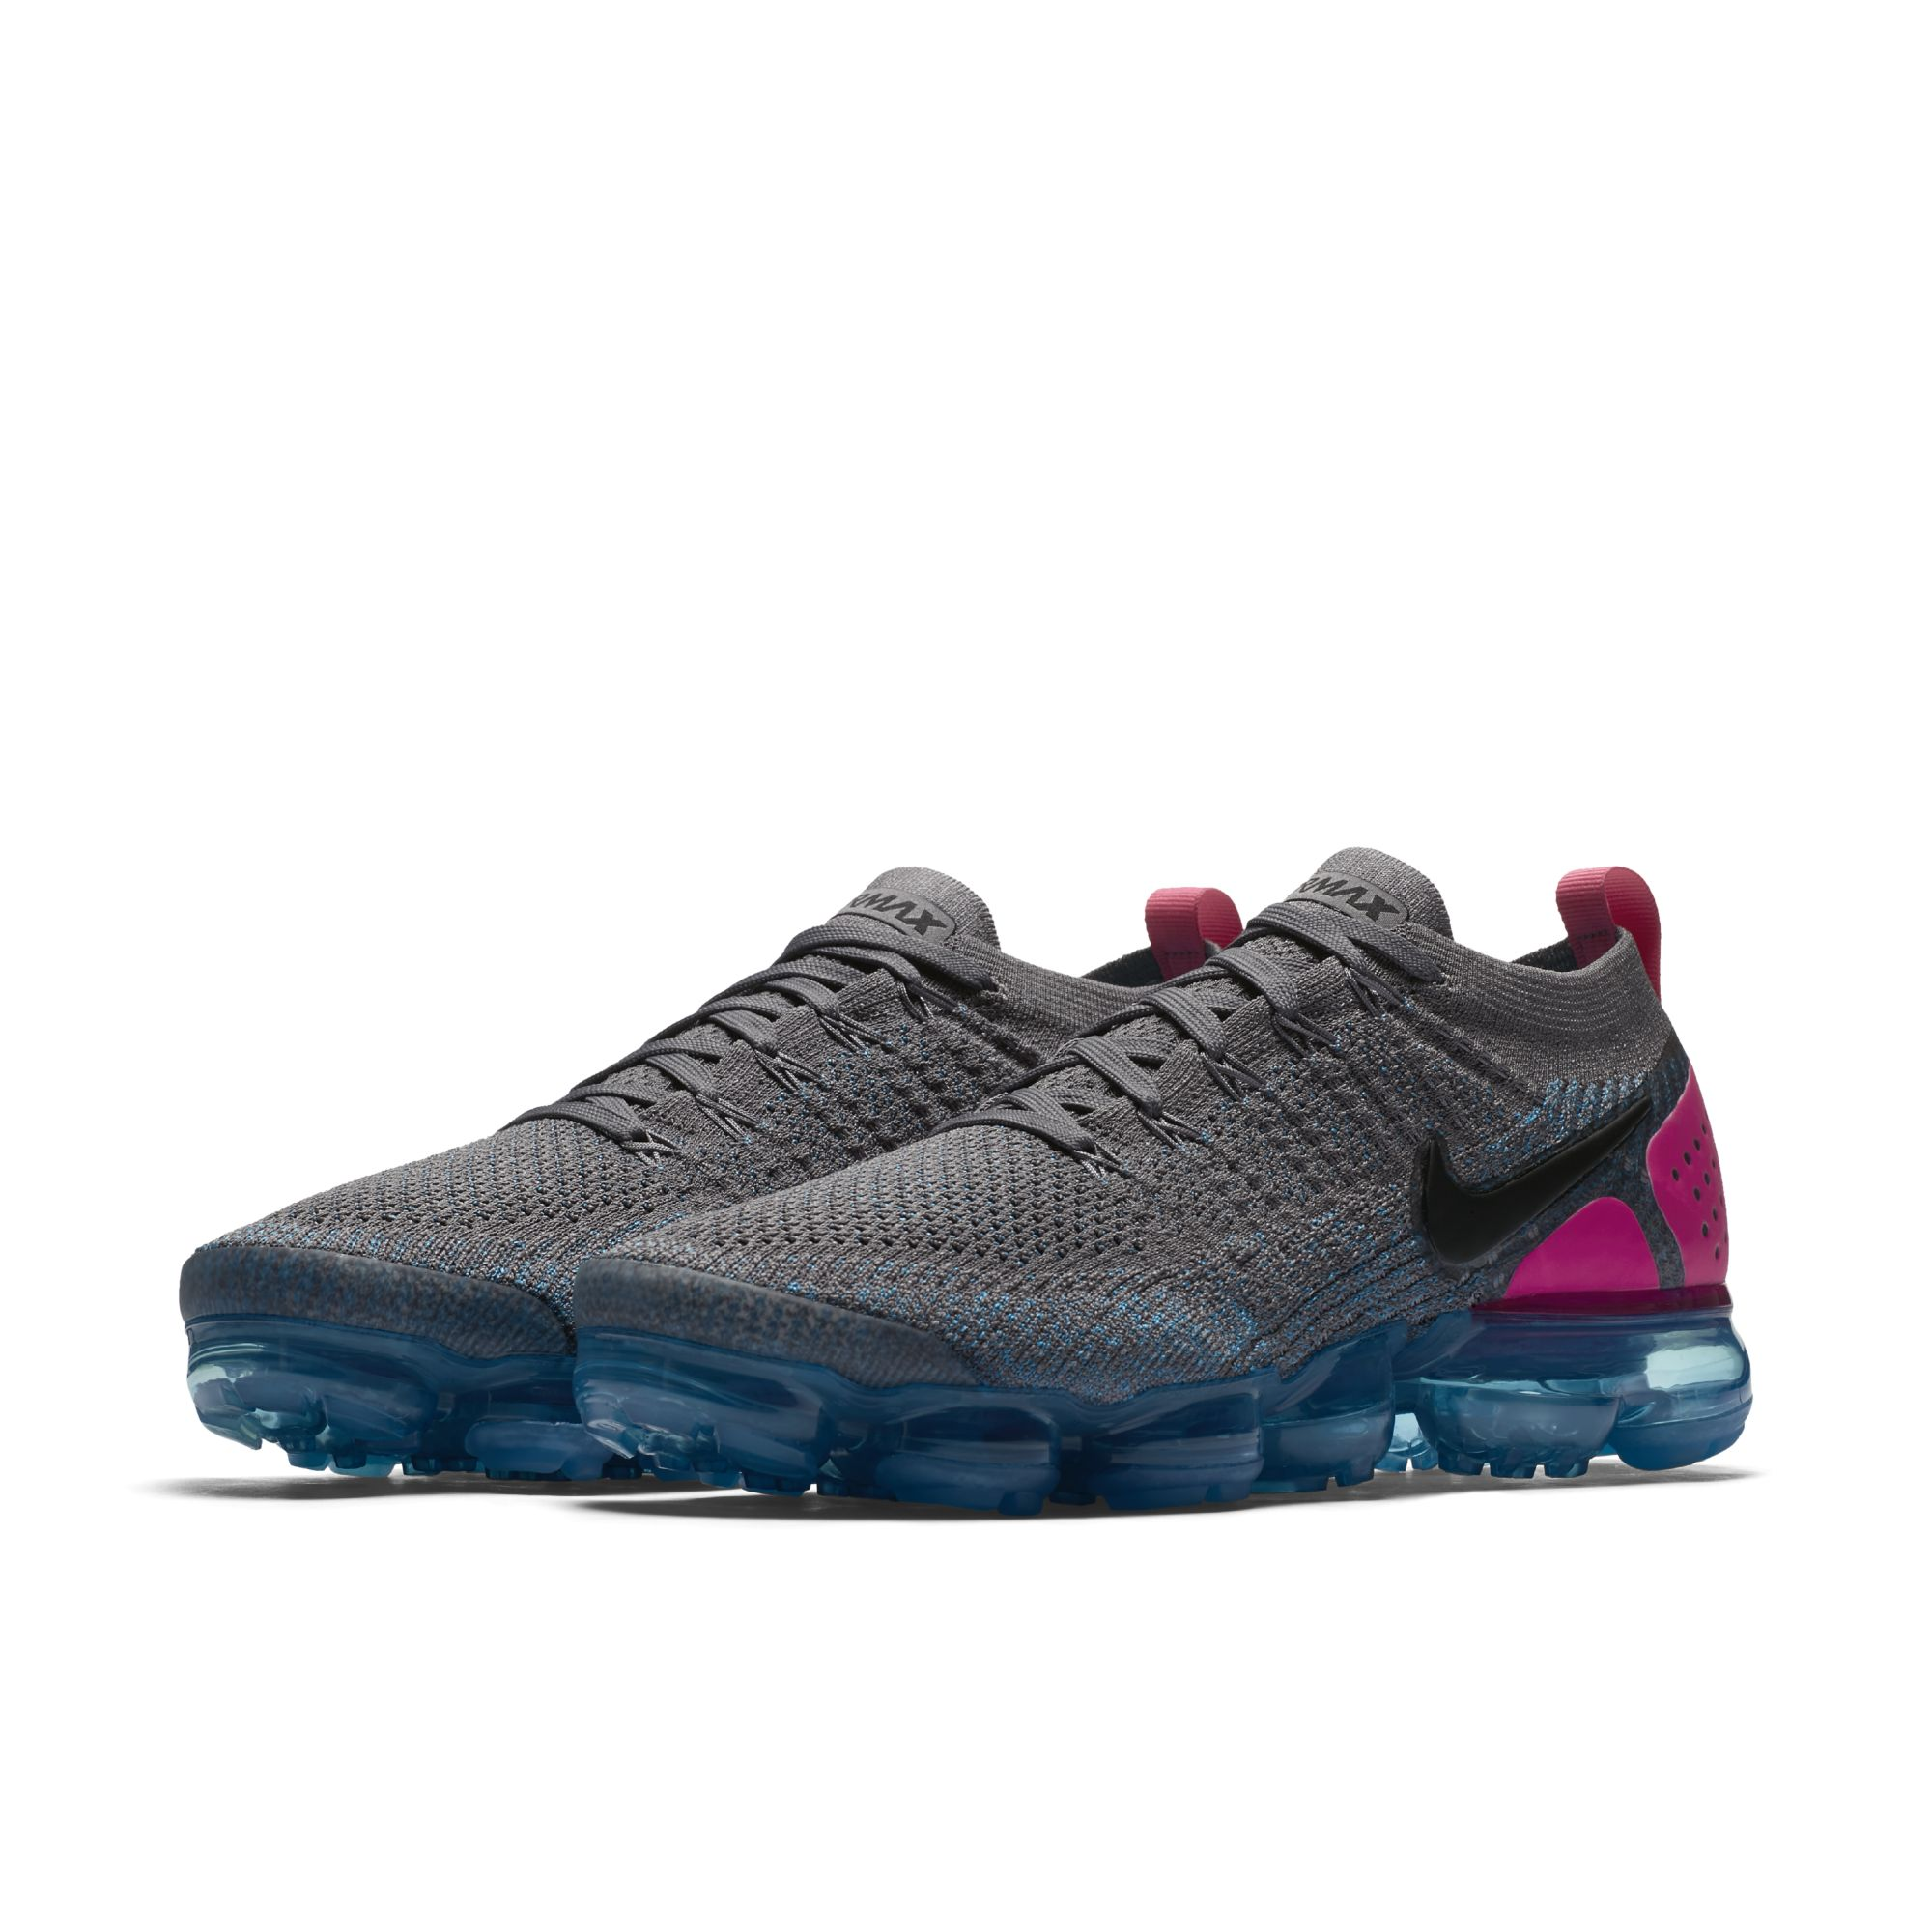 03d2a9691357 NIKE AIR VAPORMAX FLYKNIT 2 GUNSMOKE BLACK-BLUE ORBIT-PINK BLAST-BLUE  FURY-GLACIER BLUE 1